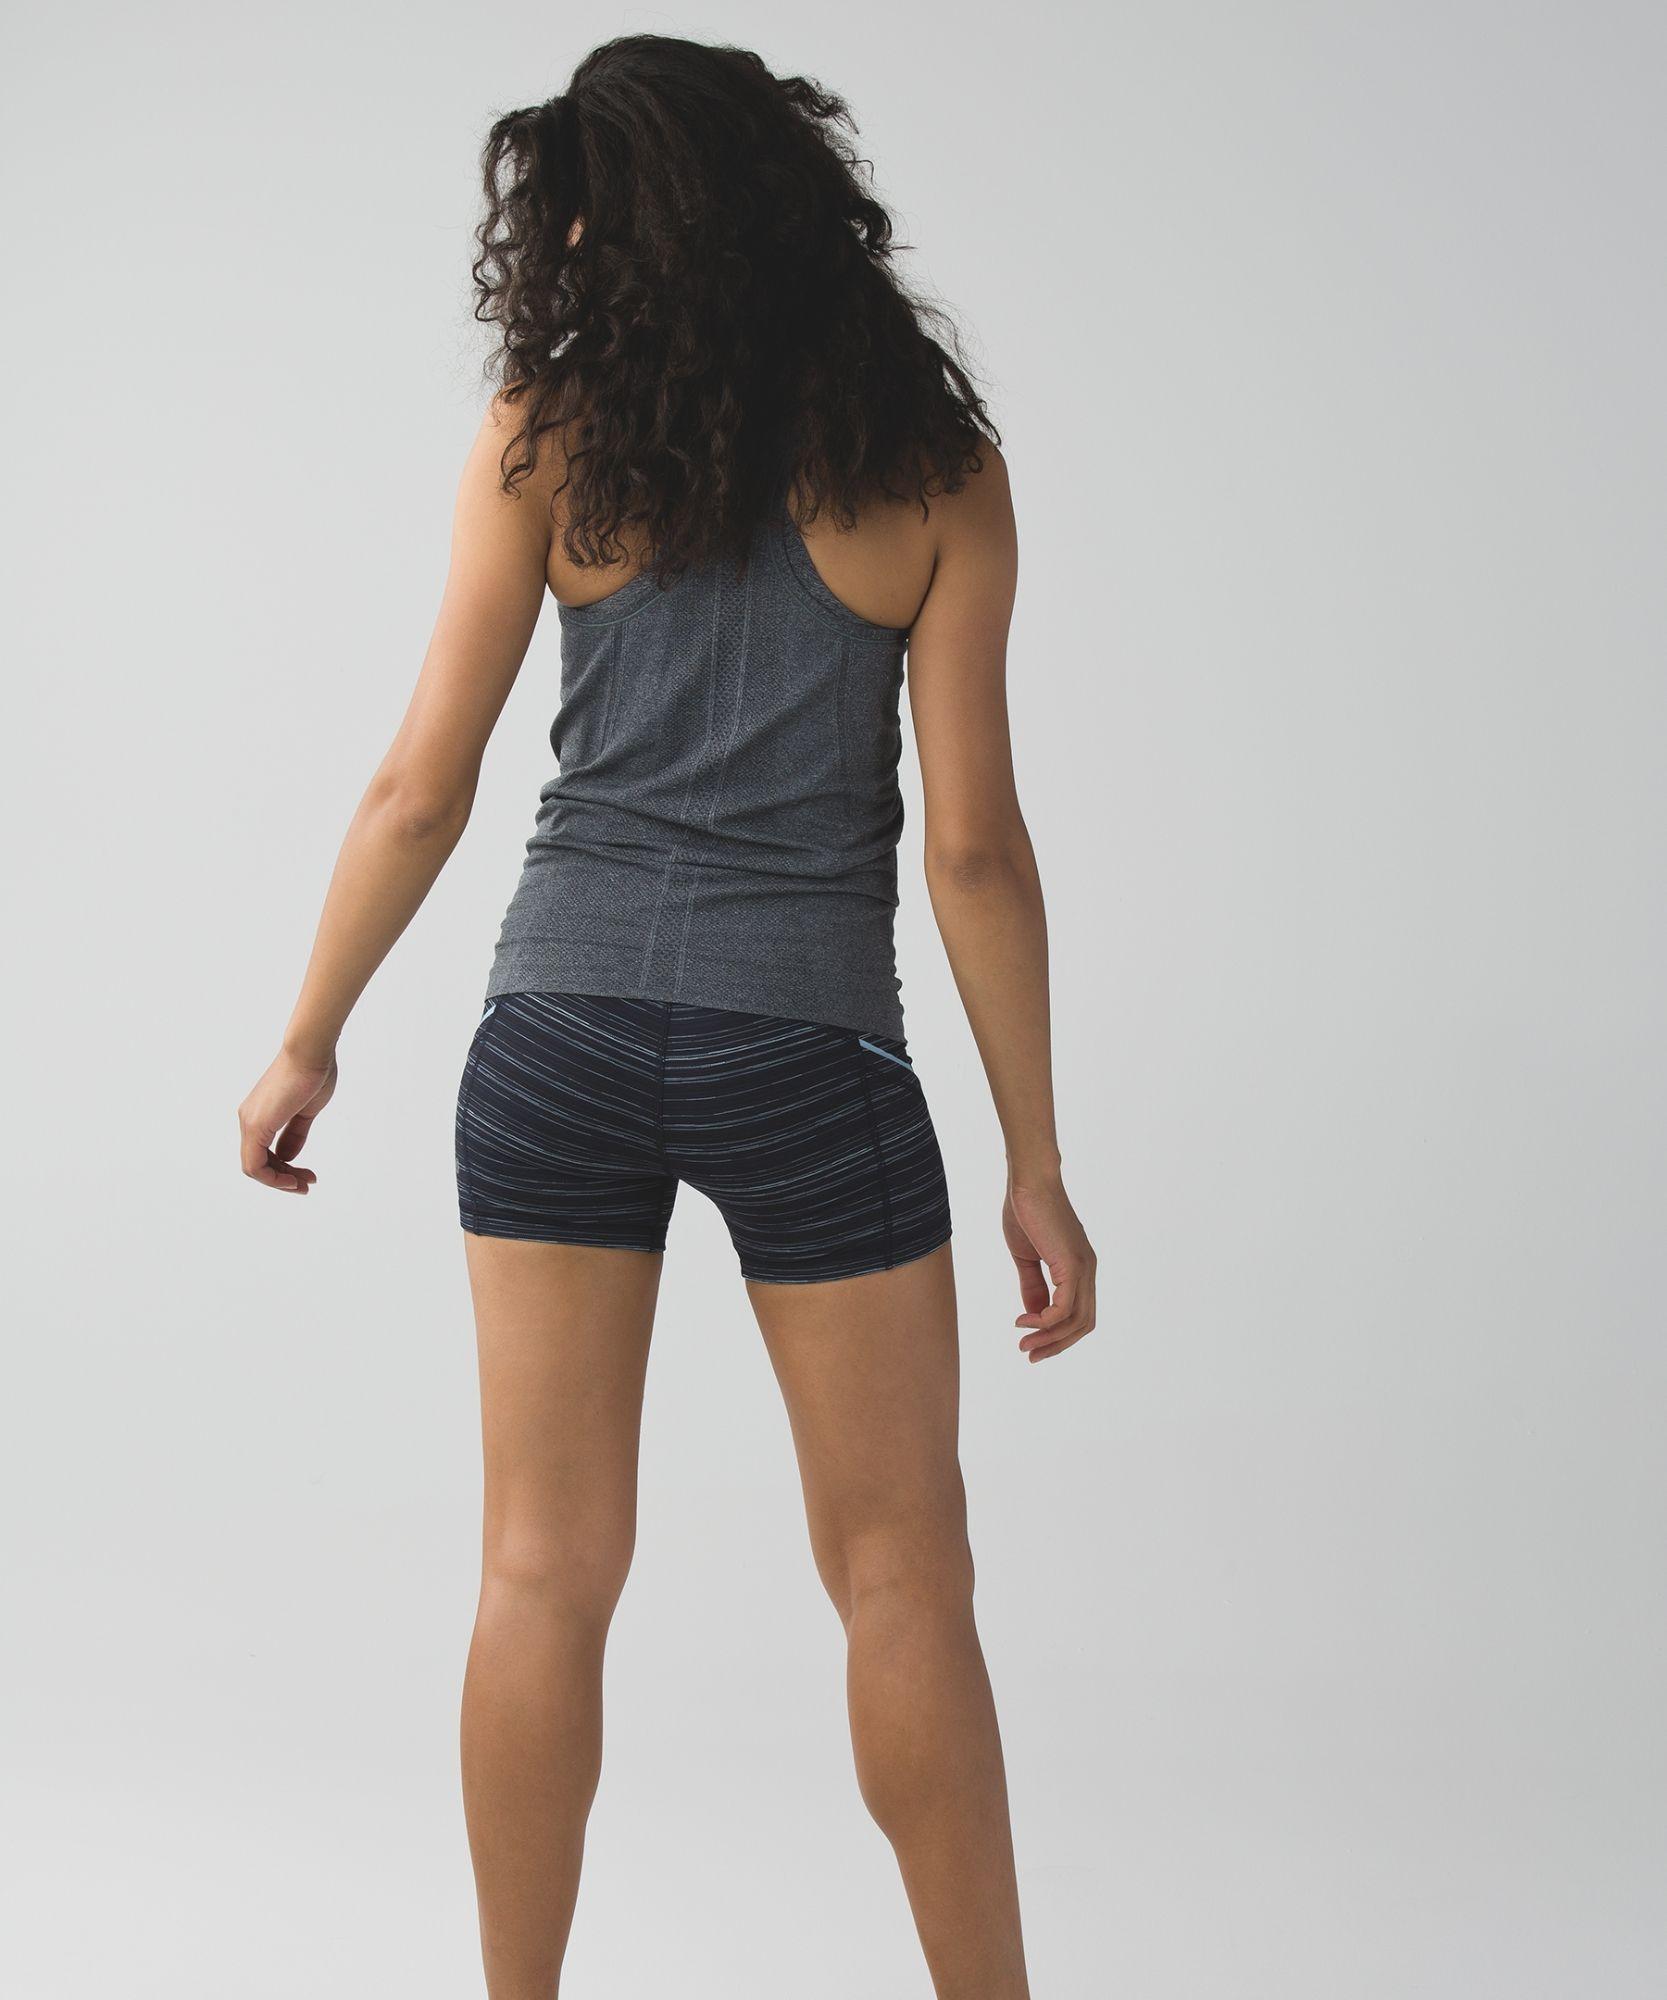 We're constantly on the move, so we designed these shorts to be ready for anything. Plenty of pockets, four-way stretch fabric and an inseam designed not to ride up mid-stride? Yup, these shorts have it all.